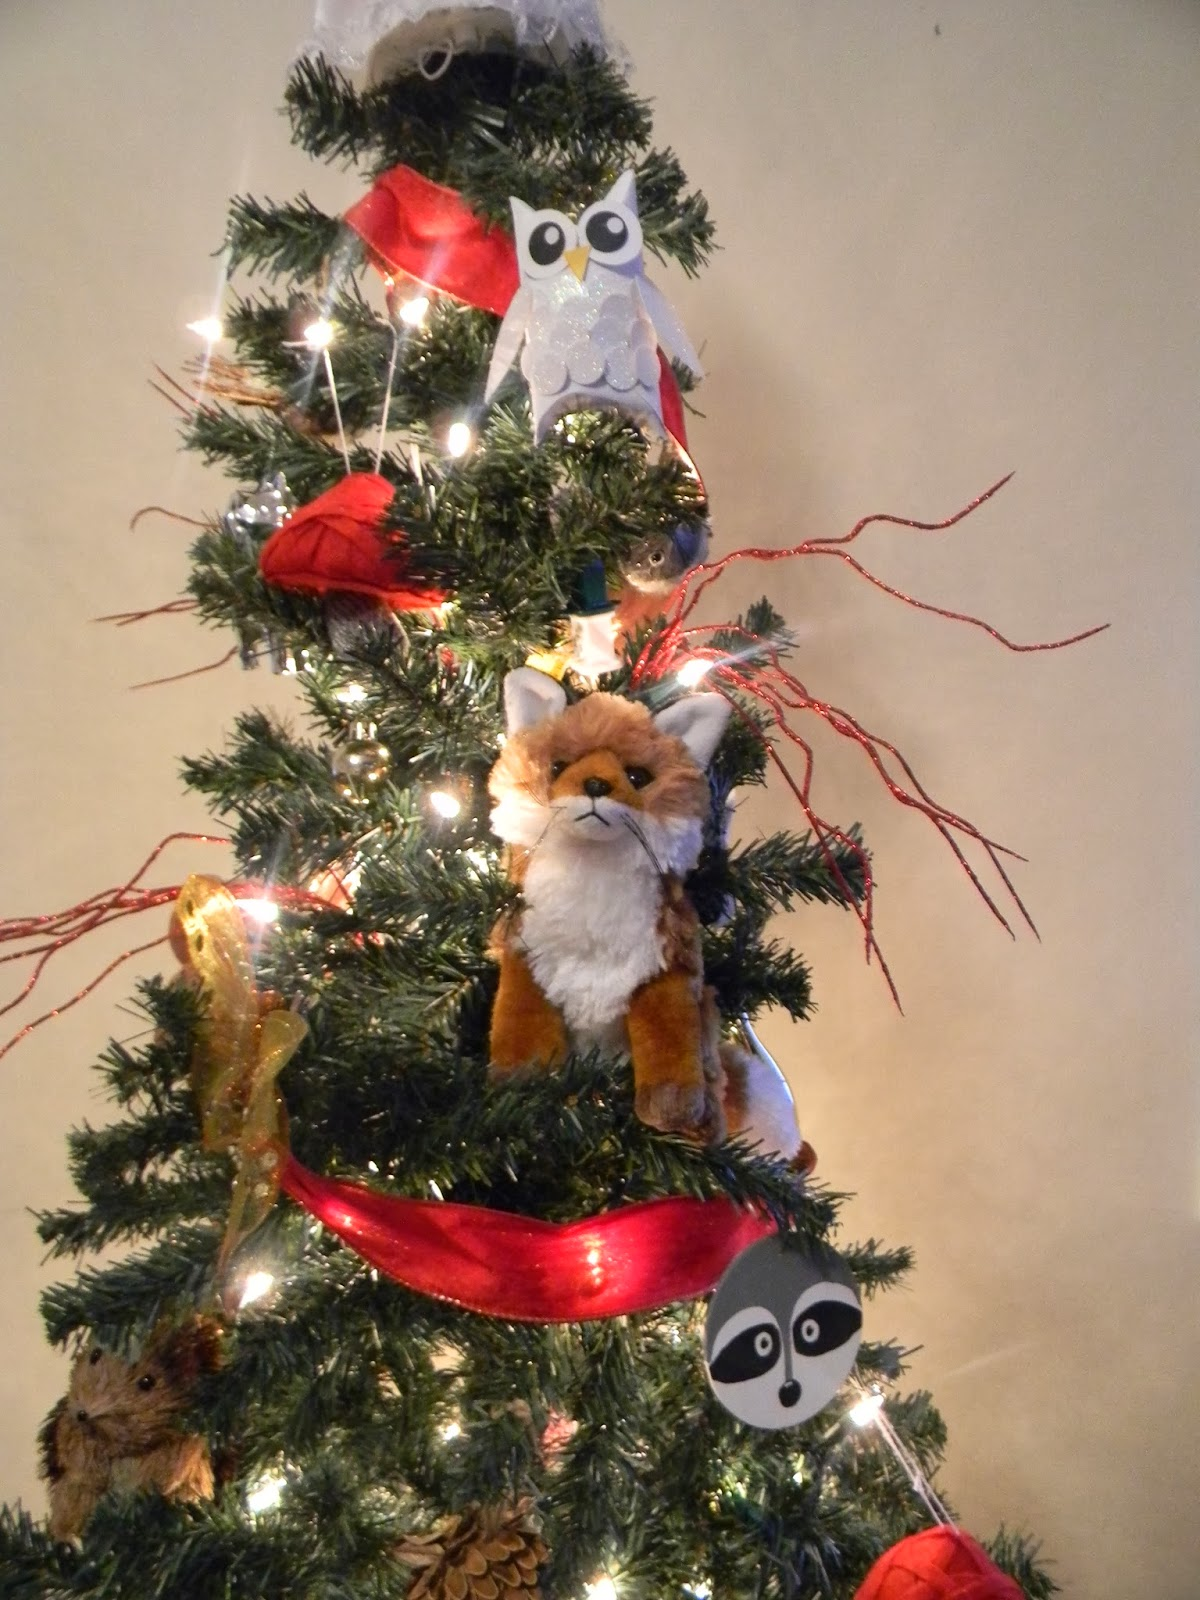 My Favorite Part Of The Tree Has To Be The Fox Toy I